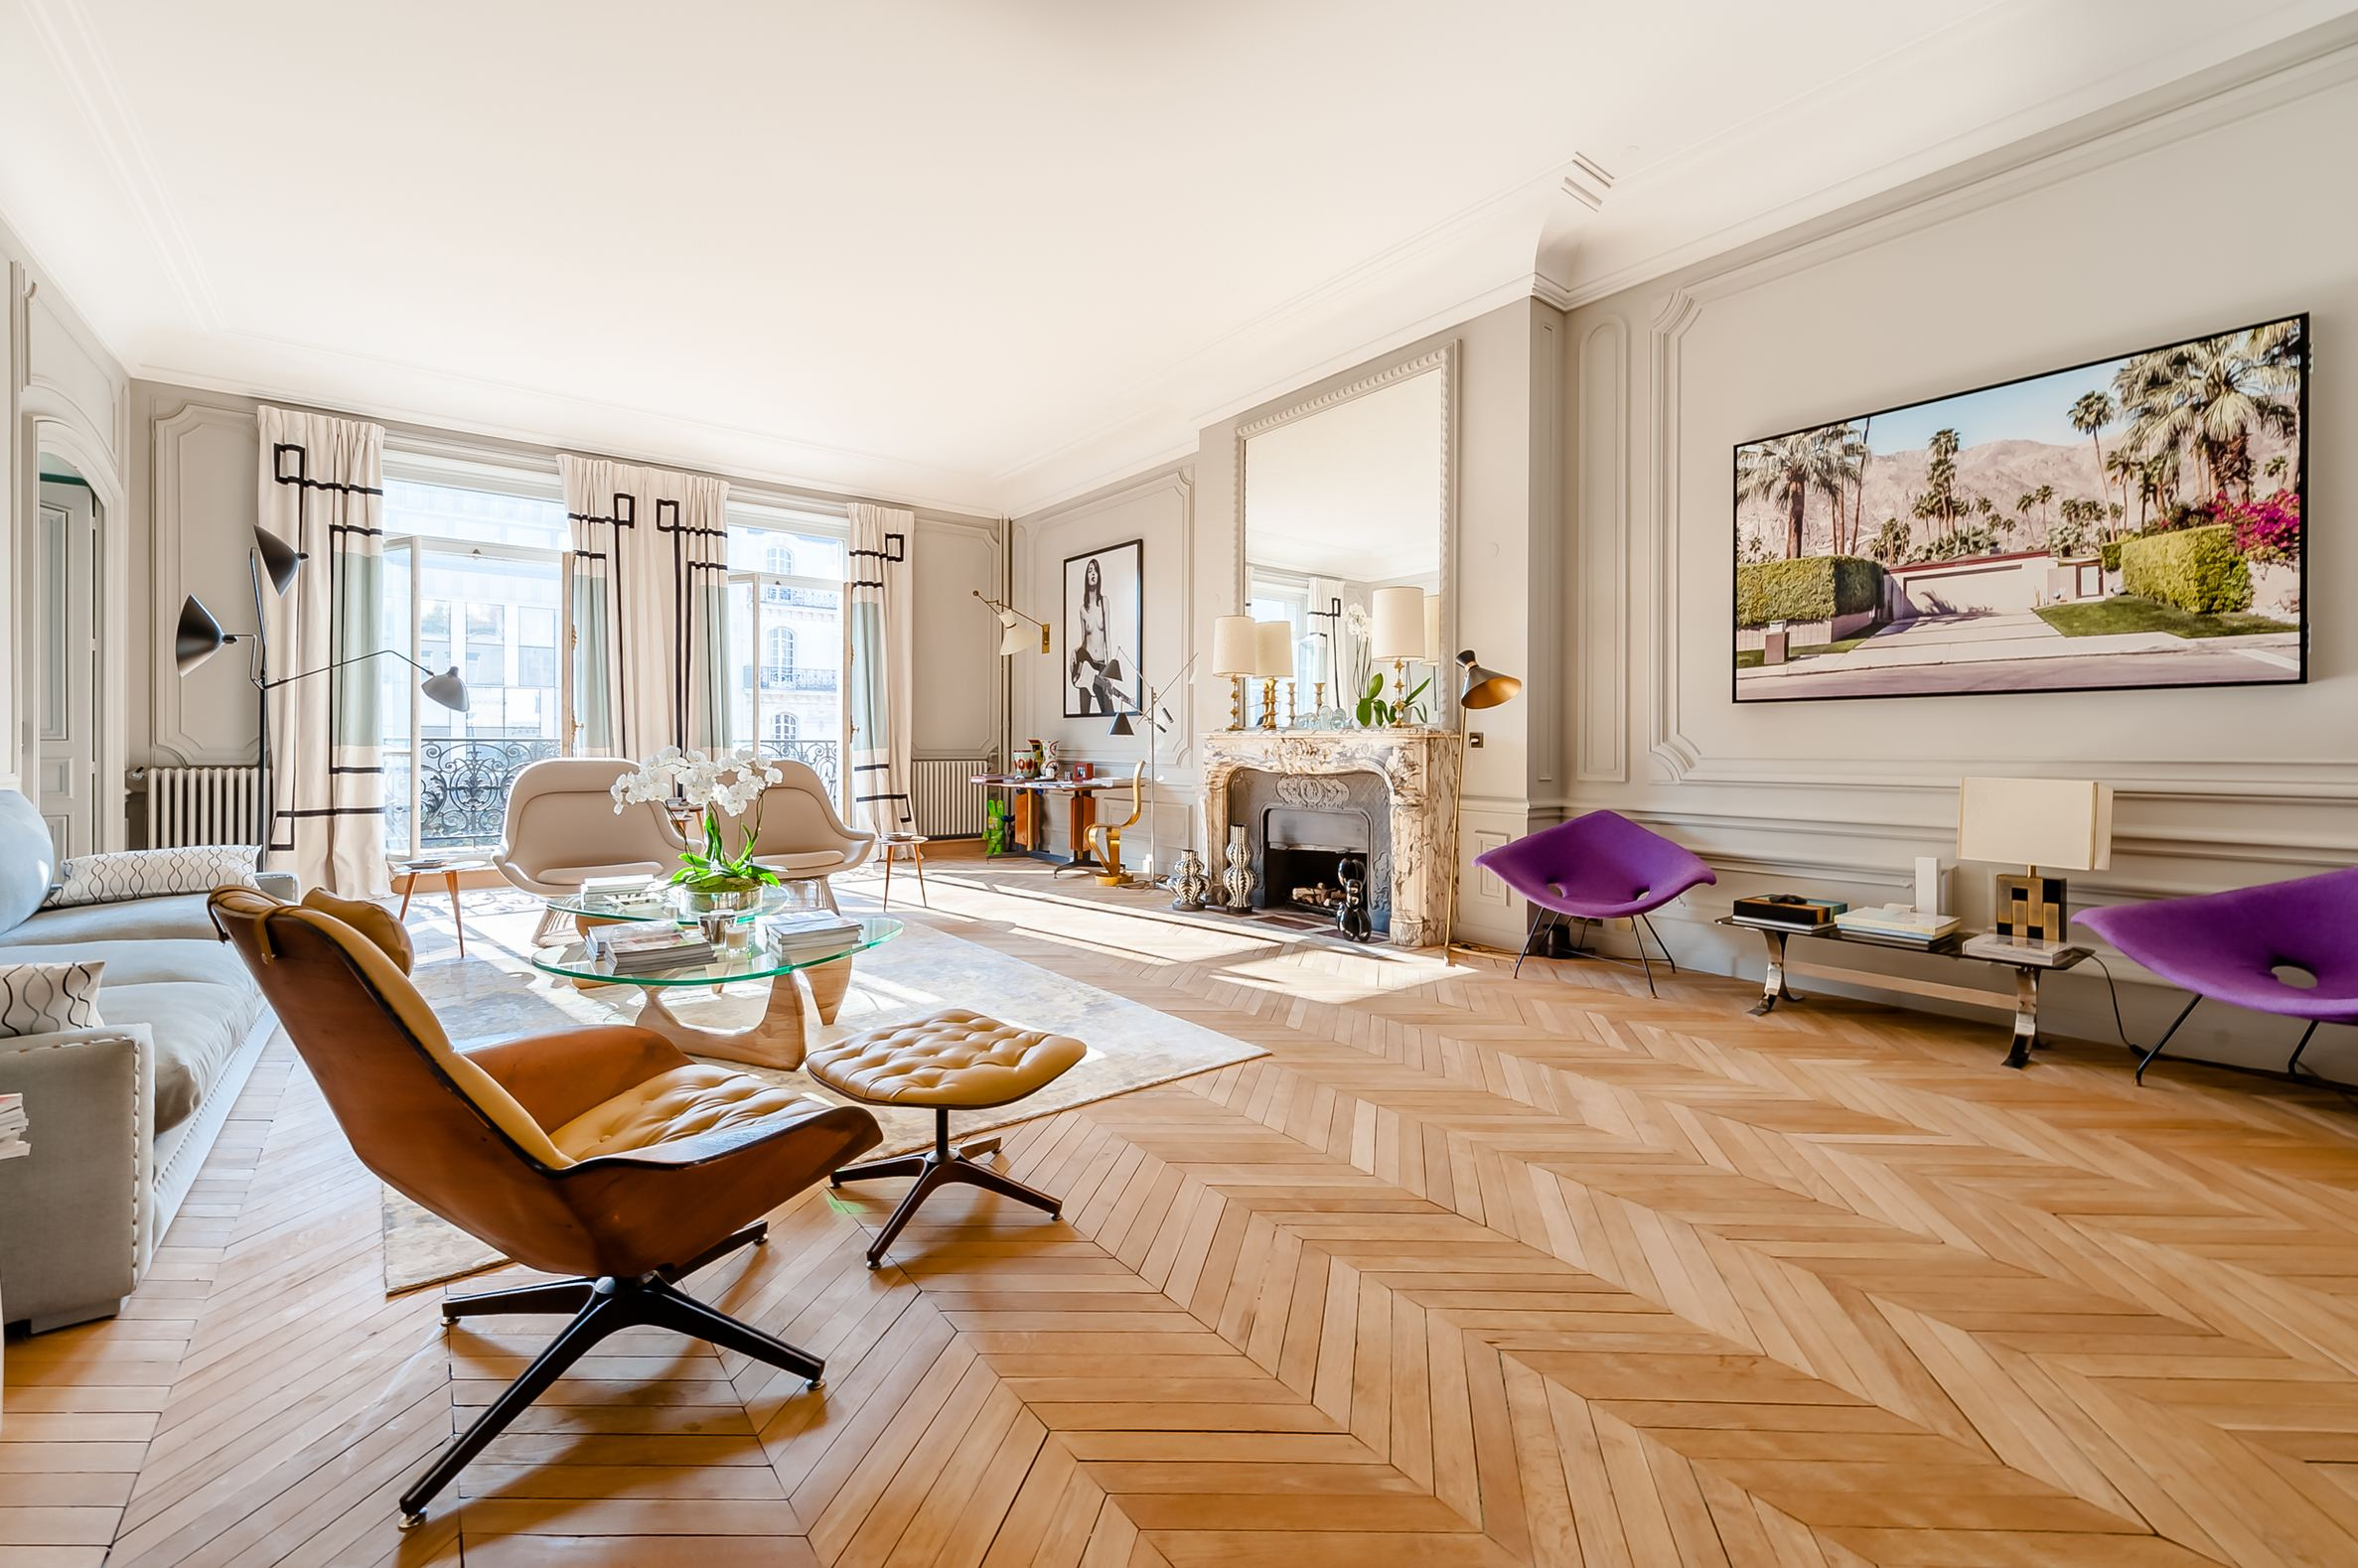 sales property at Parc Monceau - Luxury apartment renovated and furnished